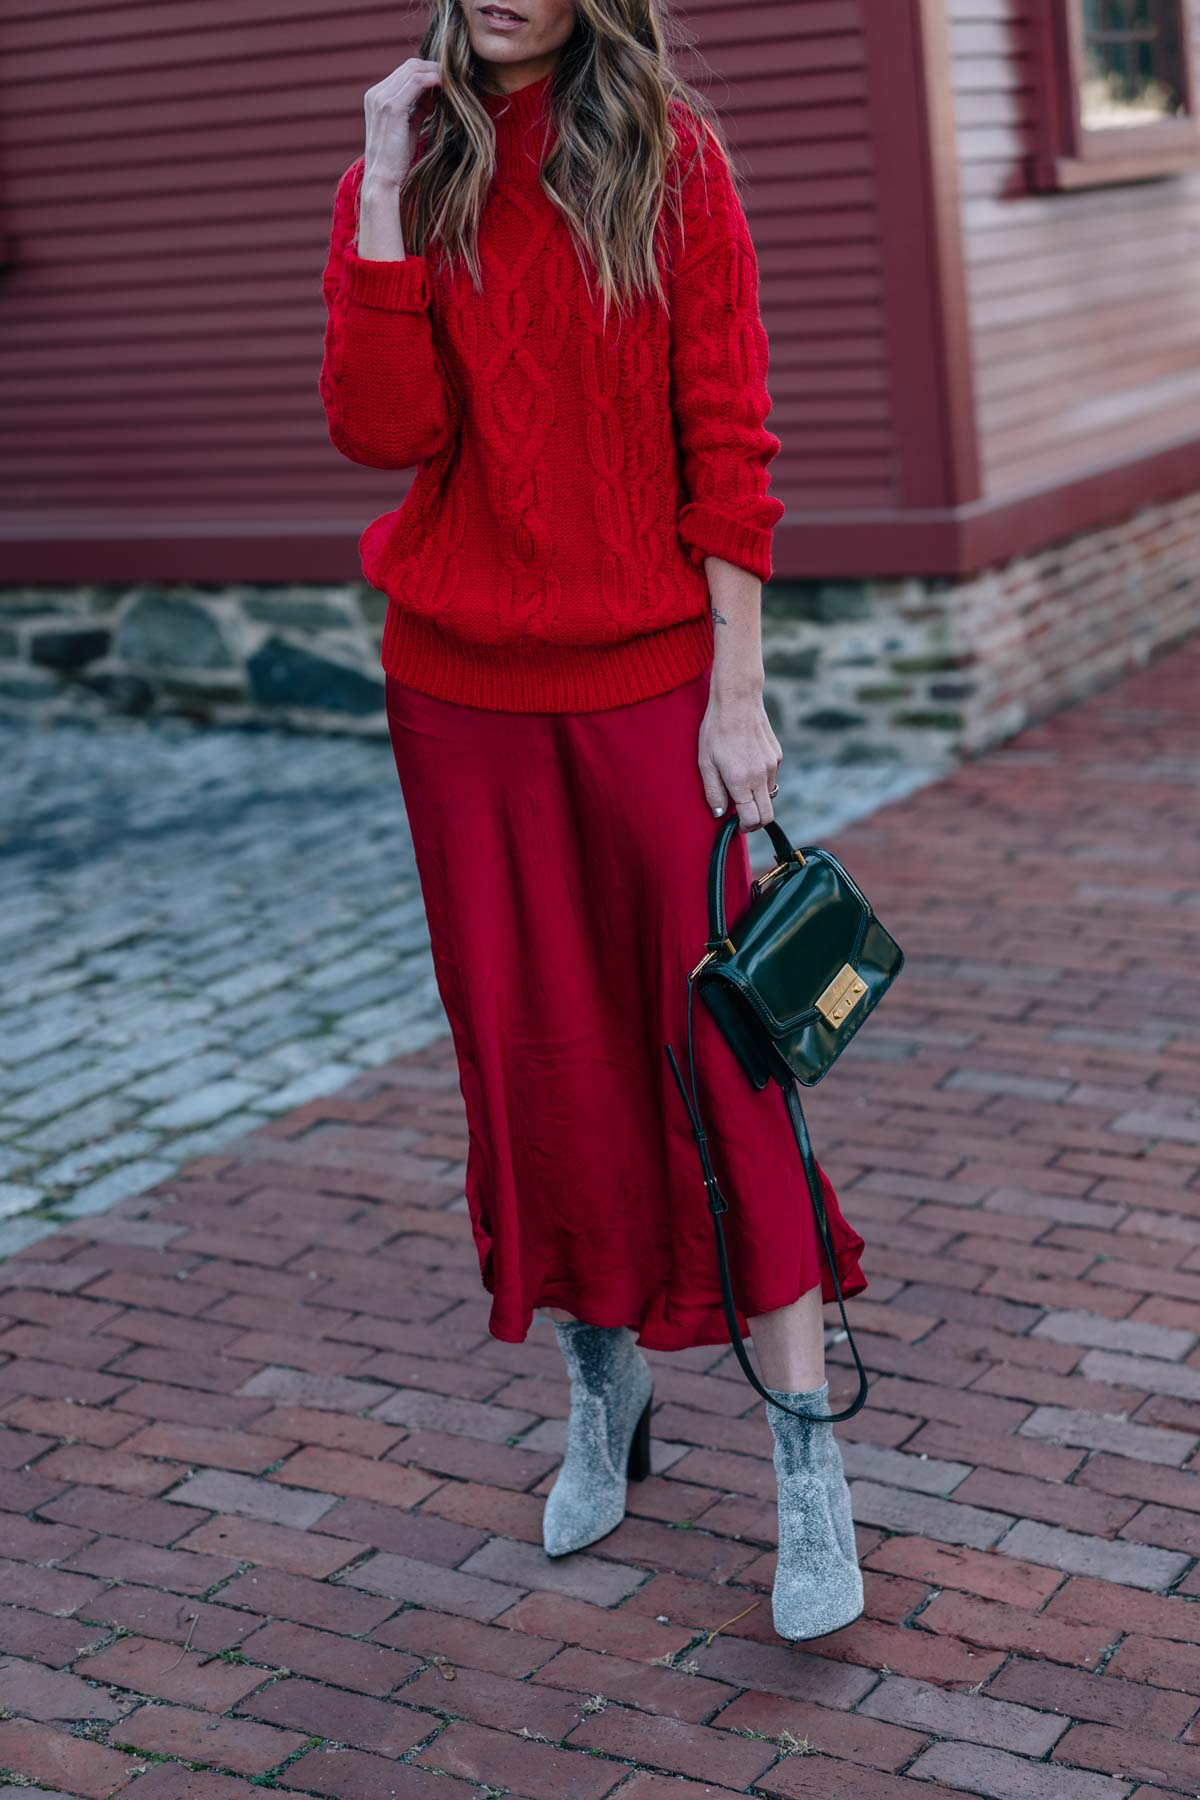 Jess Ann Kirby shares how to wear red on red this holiday season with a cable knit sweater, silk skirt and sparkle ankle boots